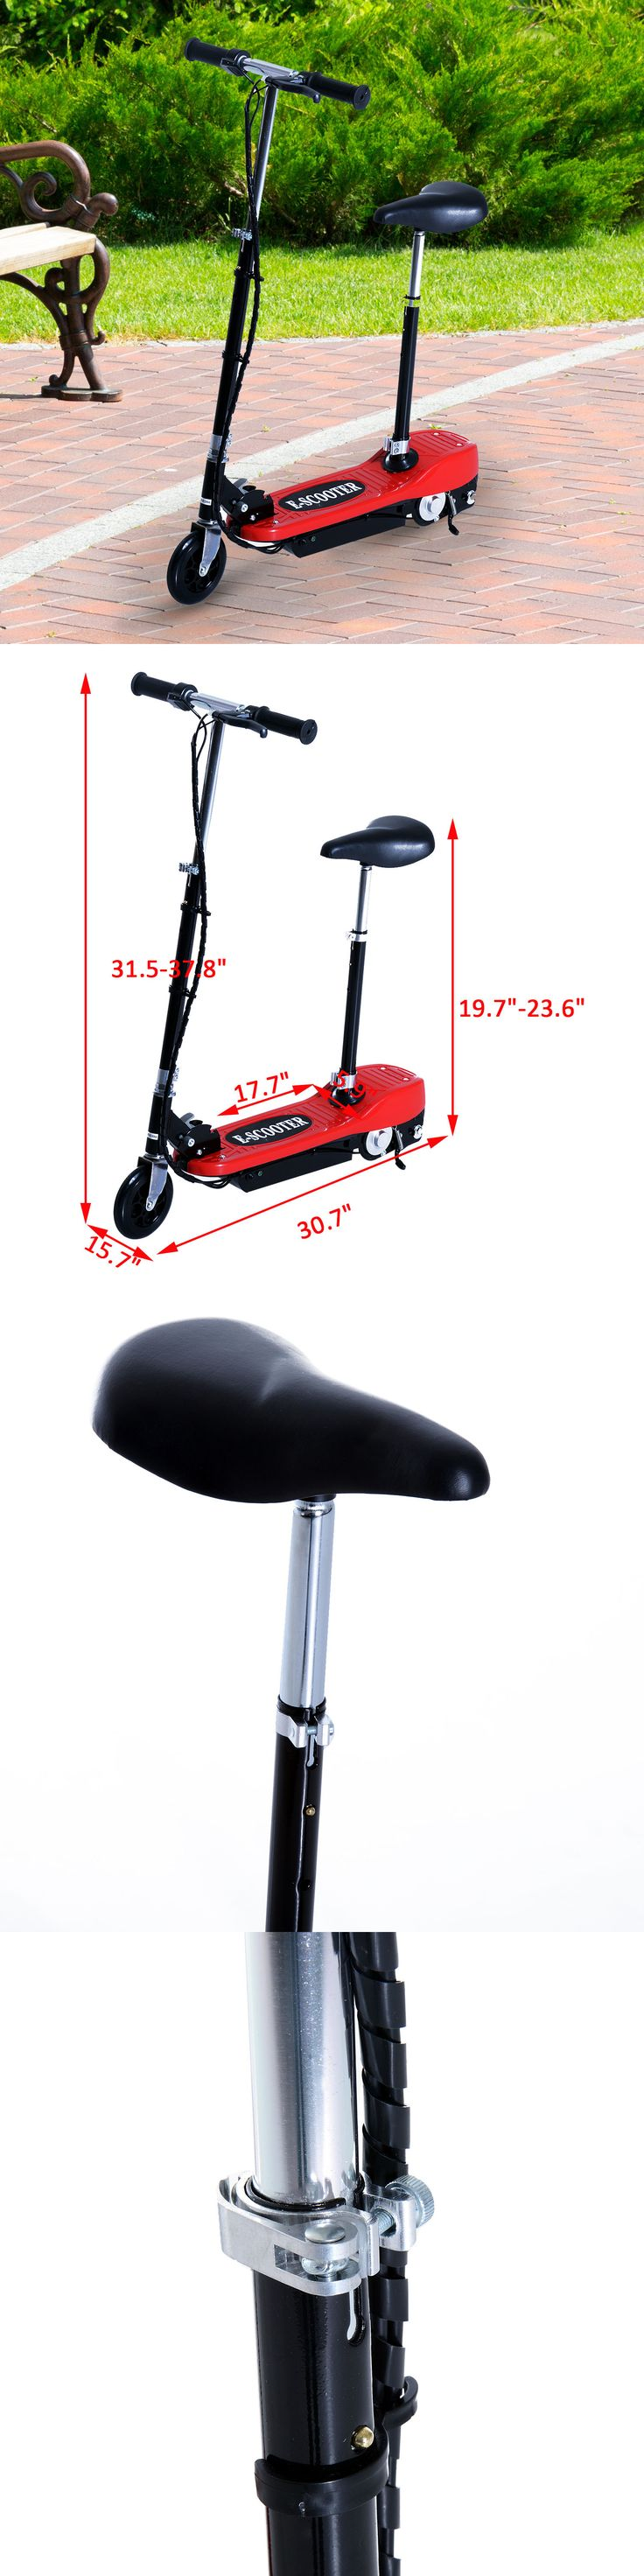 Electric Scooters 47349: Aosom Electric E Scooter Seat Kids Motorized Ride On Bike Battery Powered Red -> BUY IT NOW ONLY: $79.99 on eBay!